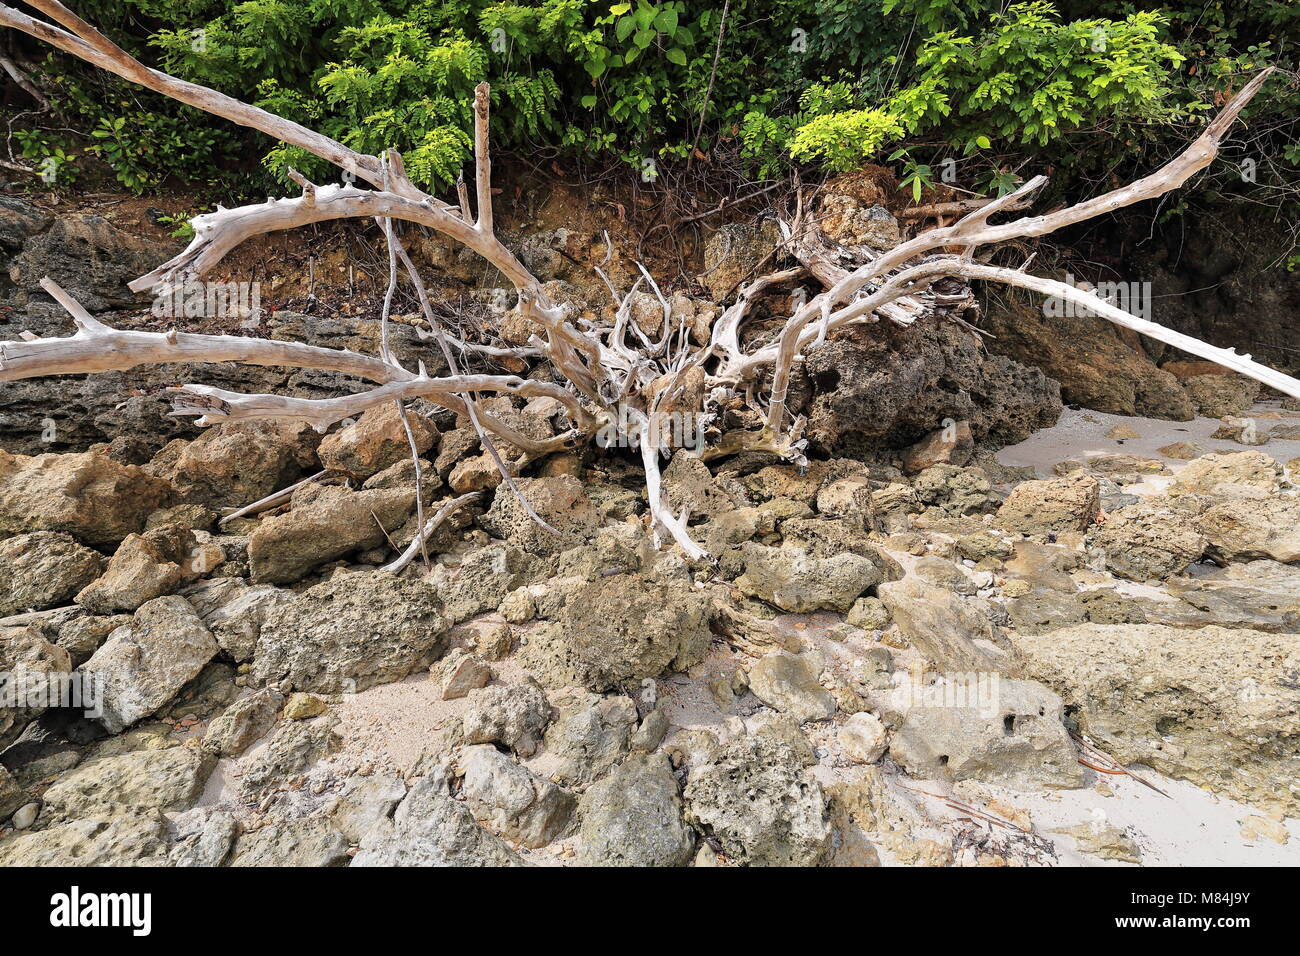 Bunch of dead dry tree branches among coralline rocks left aside on the sand in the shade of the luxuriant coastal - Stock Image